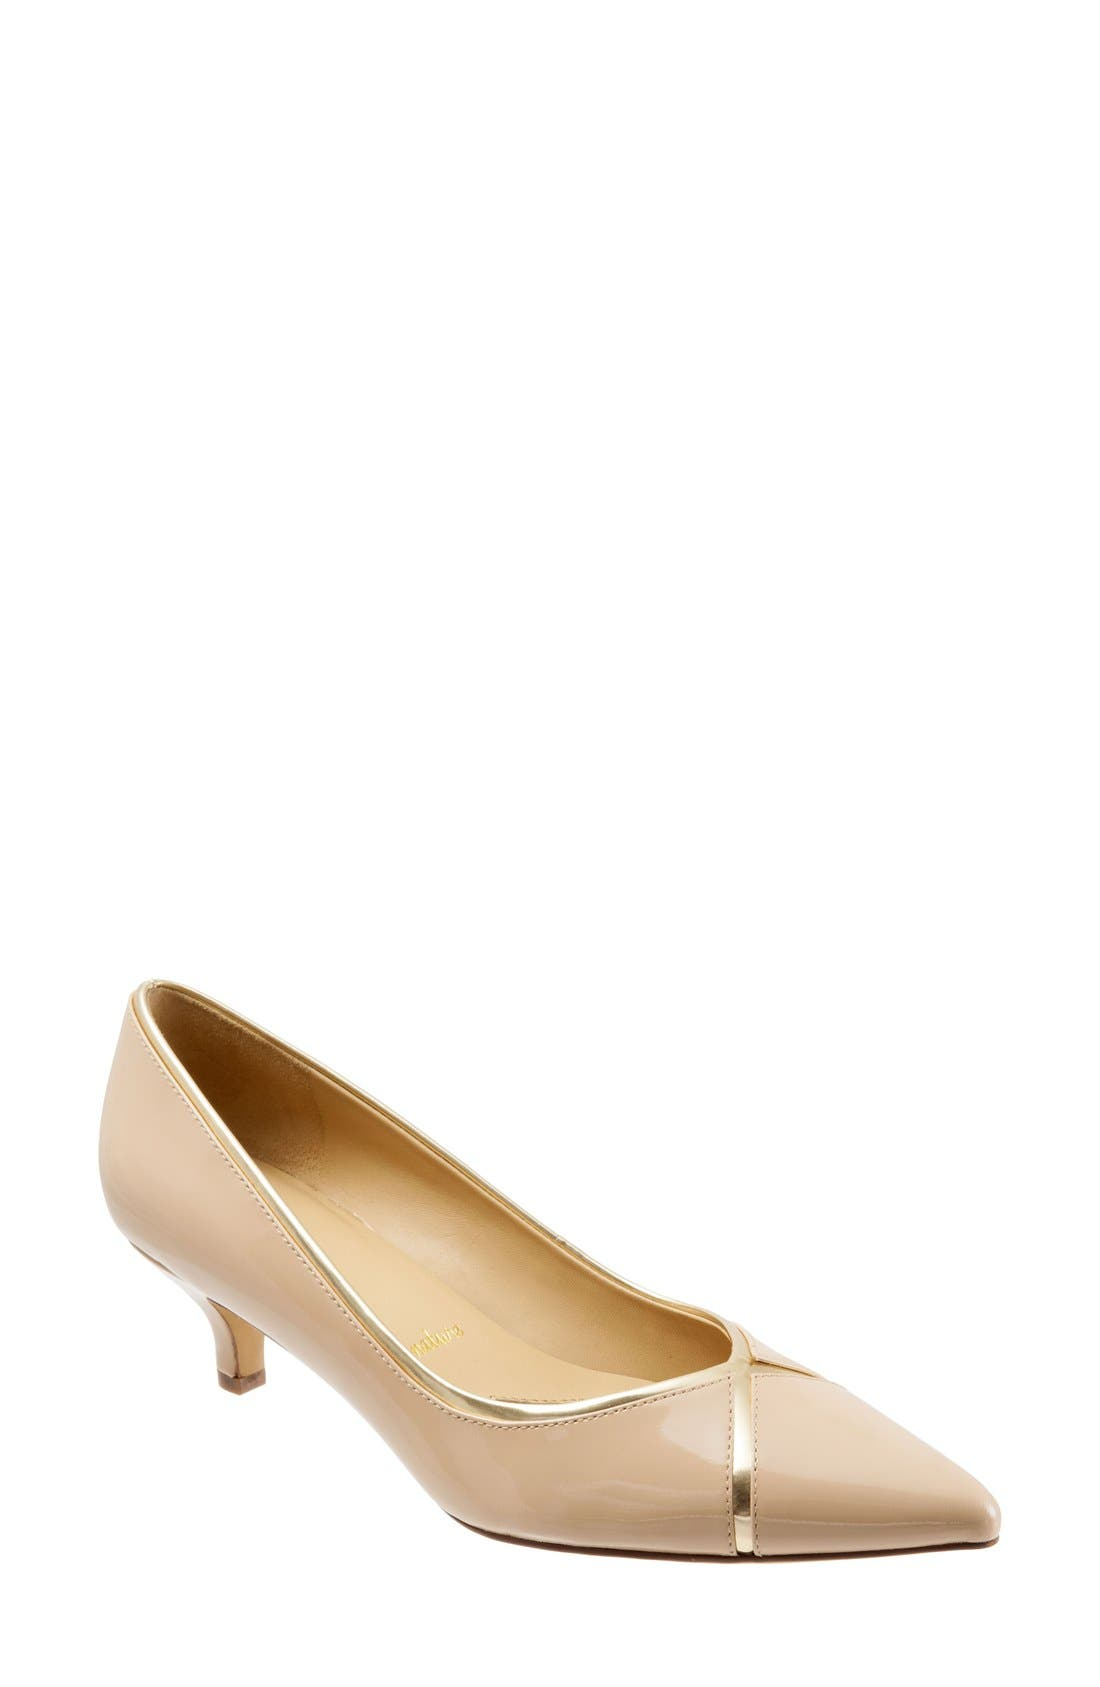 'Kelsey' Pointy Toe Pump,                             Main thumbnail 1, color,                             Nude